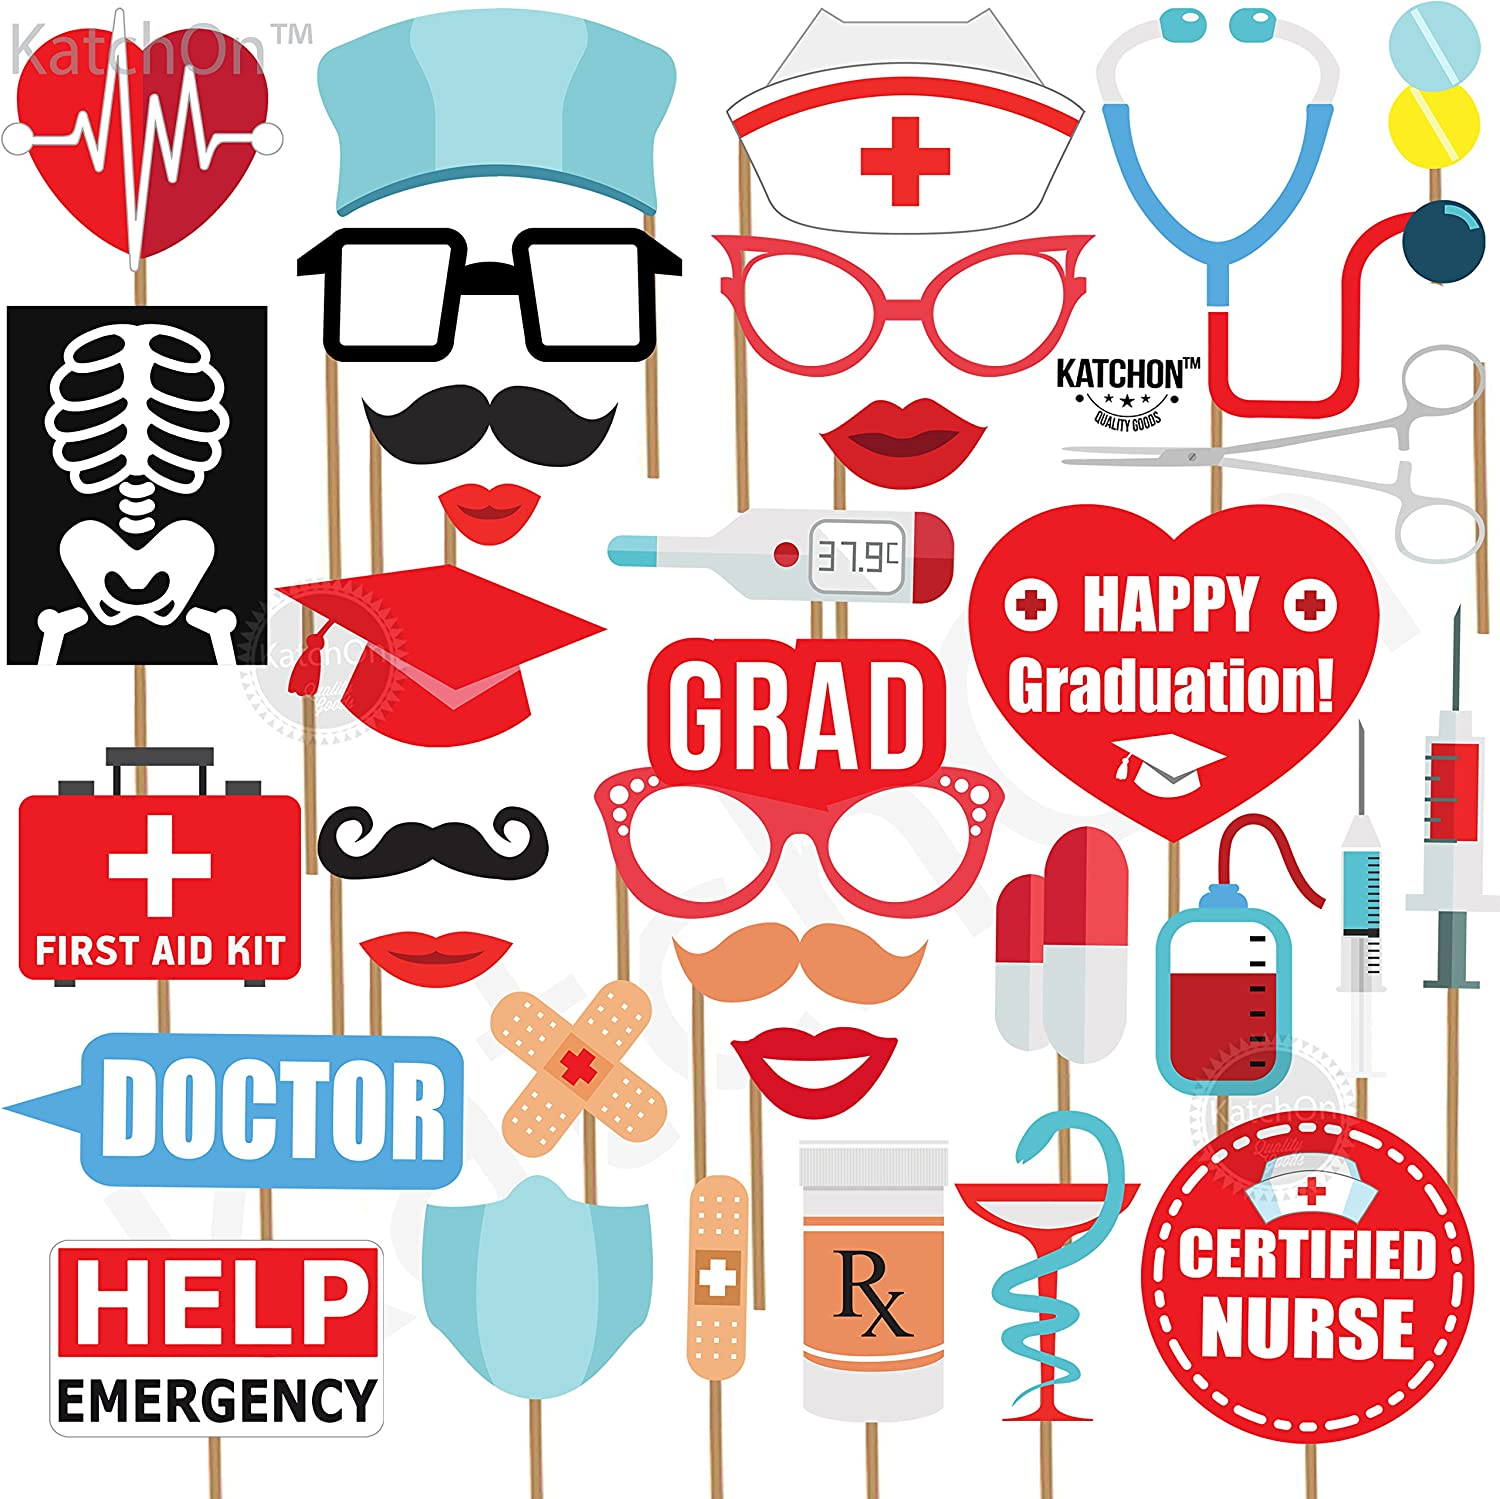 Medical Nursing School College Graduation Backdrops Photography Step and Repeat Studio Background for Retirement Party Photo Booth Props